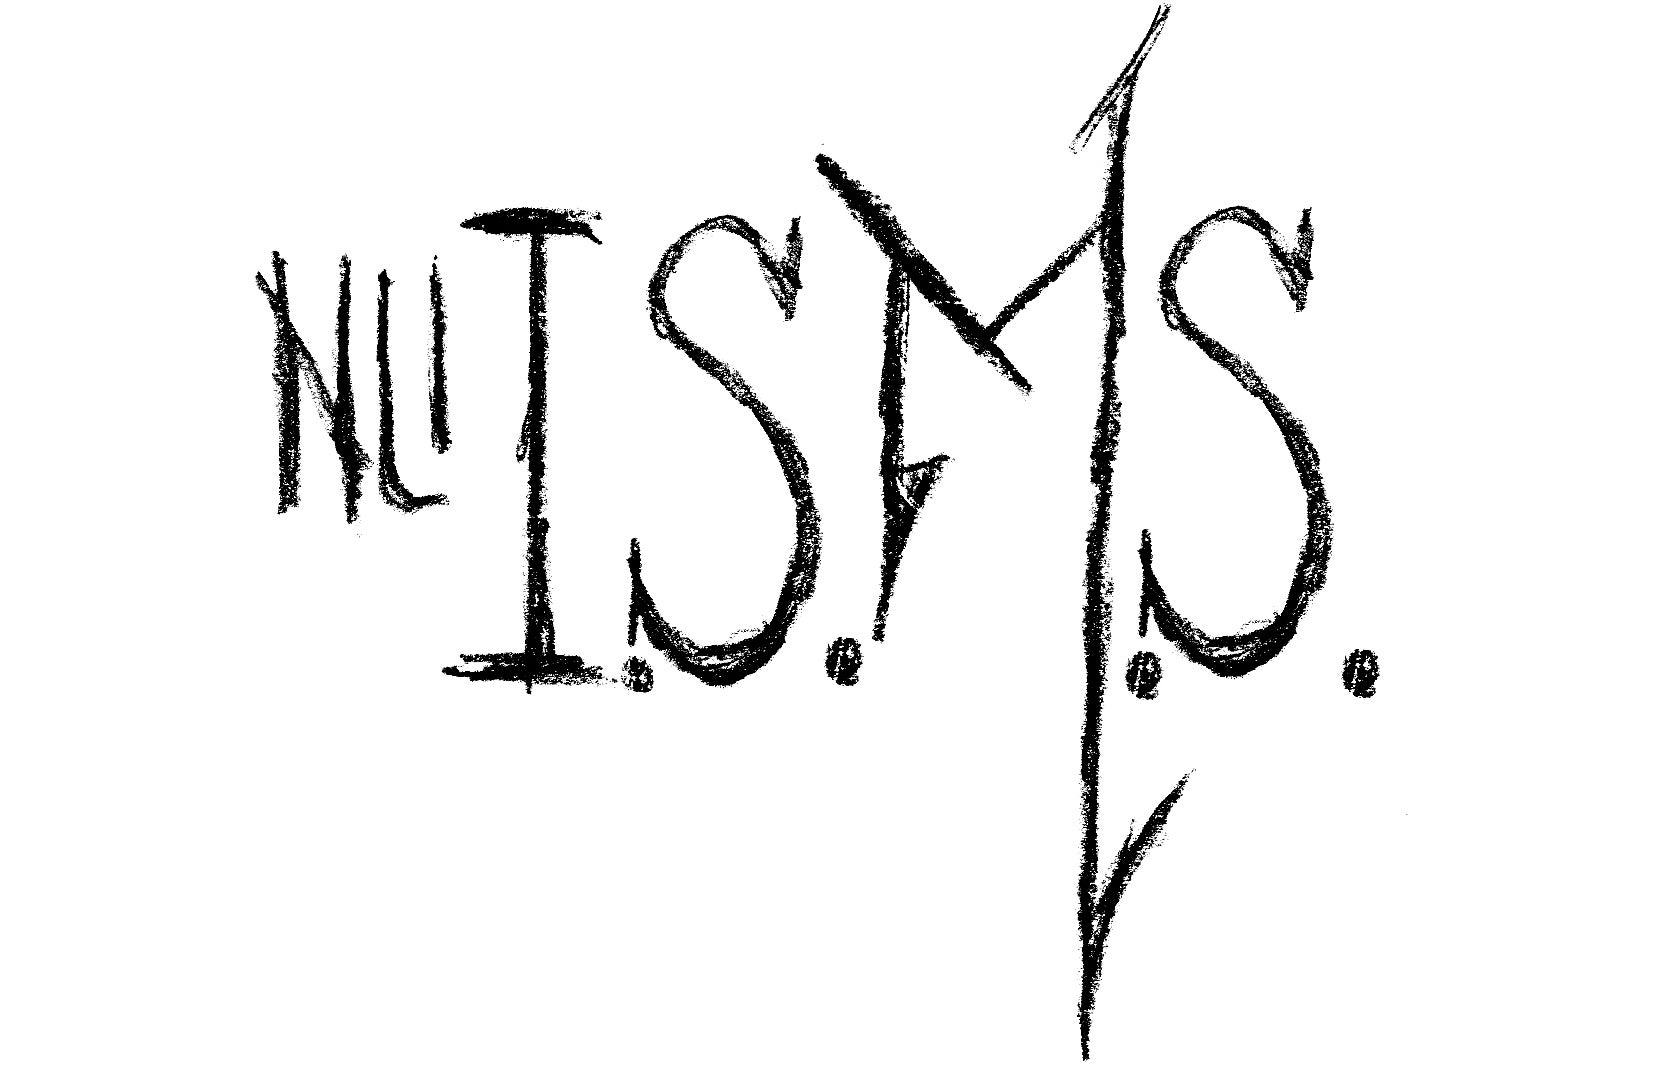 NuISMS